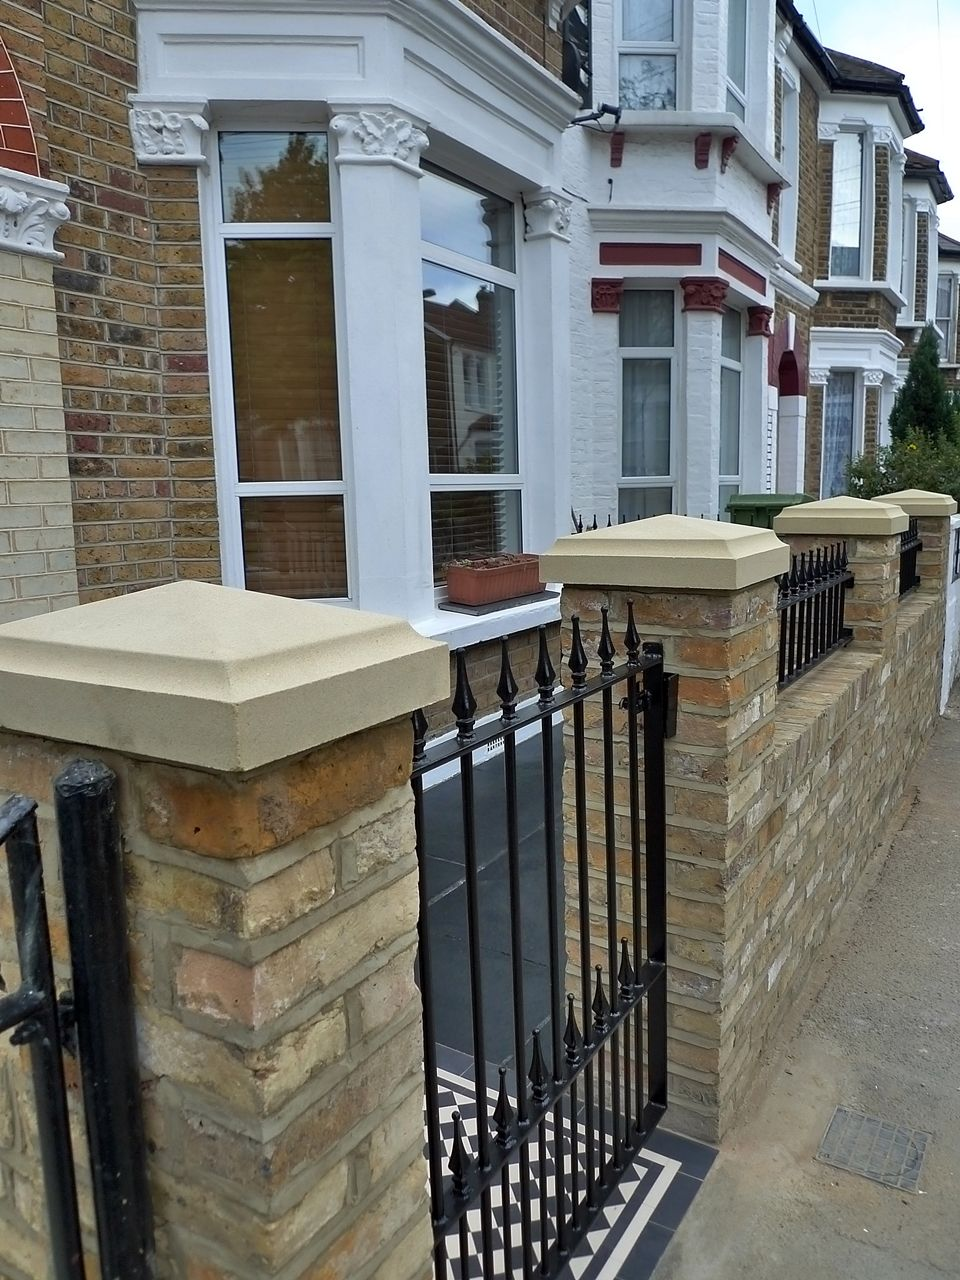 Good Victorian Front Garden Design London Stock Second Hand Reclaimed Brick Wall  And Natural Stone Cap Wall